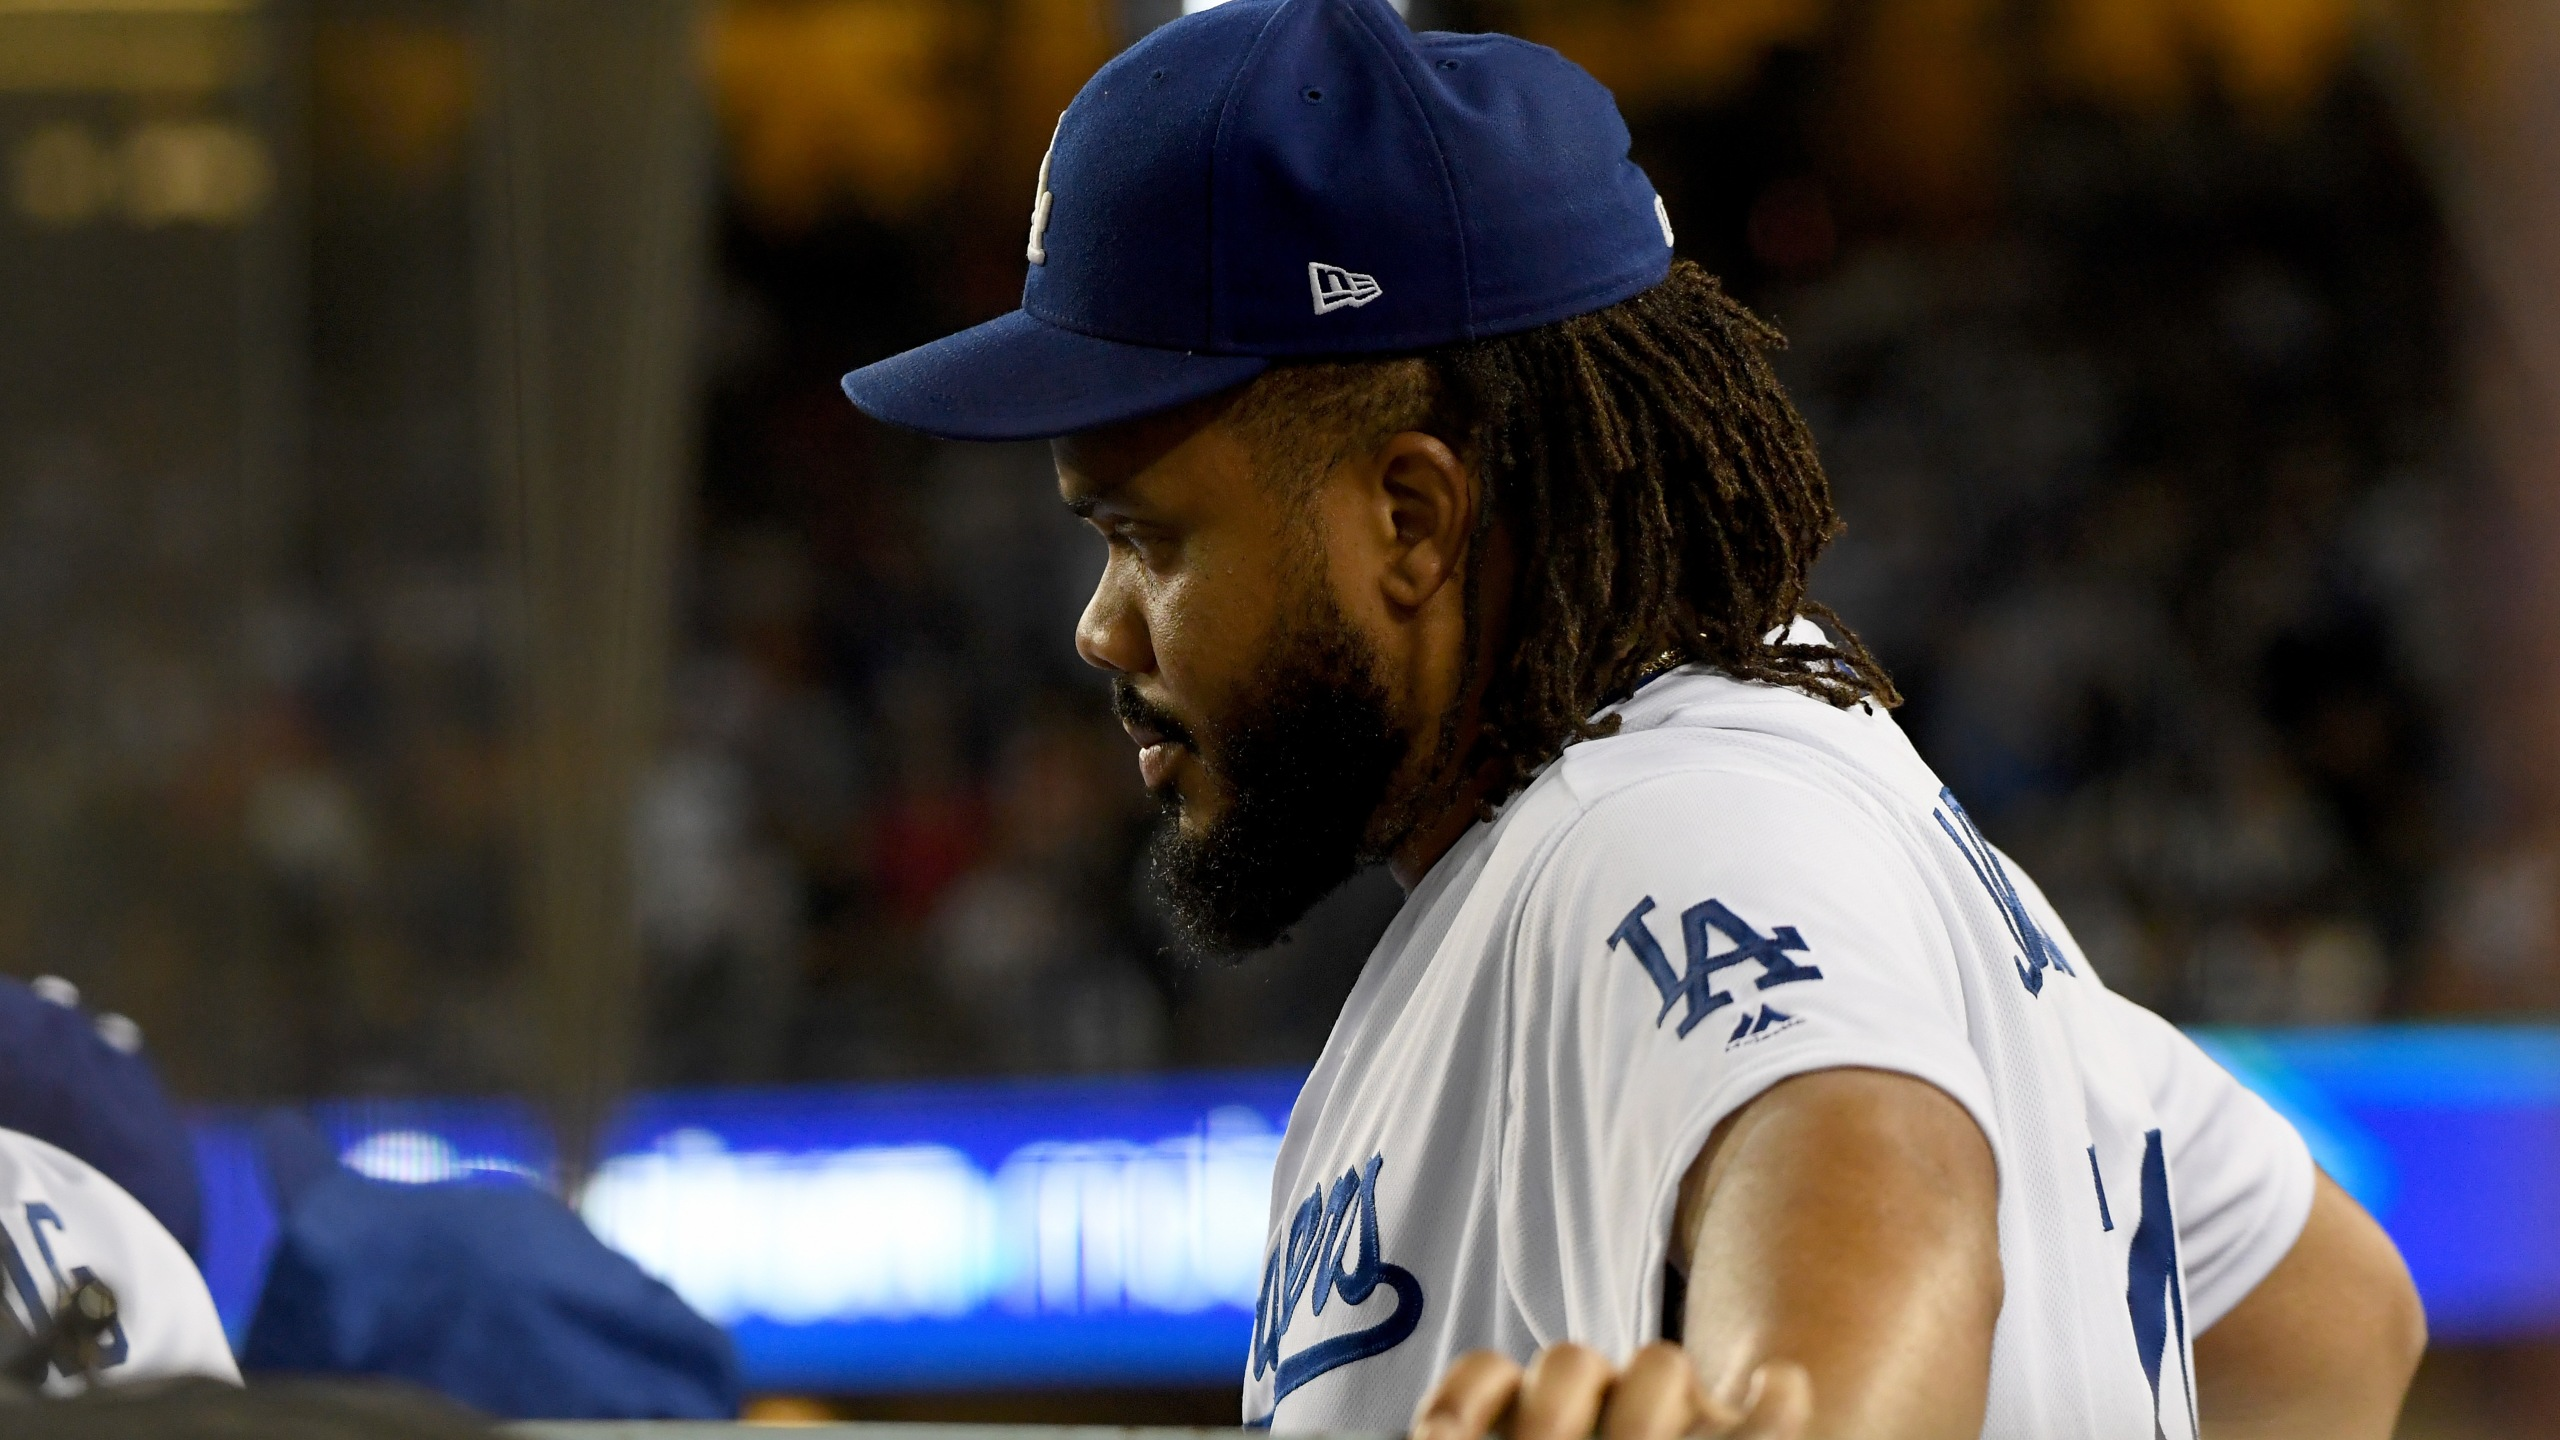 Kenley Jansen #74 of the Los Angeles Dodgers looks on from the dugout during the ninth inning against the Boston Red Sox in Game Five of the 2018 World Series at Dodger Stadium on Oct. 28, 2018 in Los Angeles. (Credit: Harry How/Getty Images)